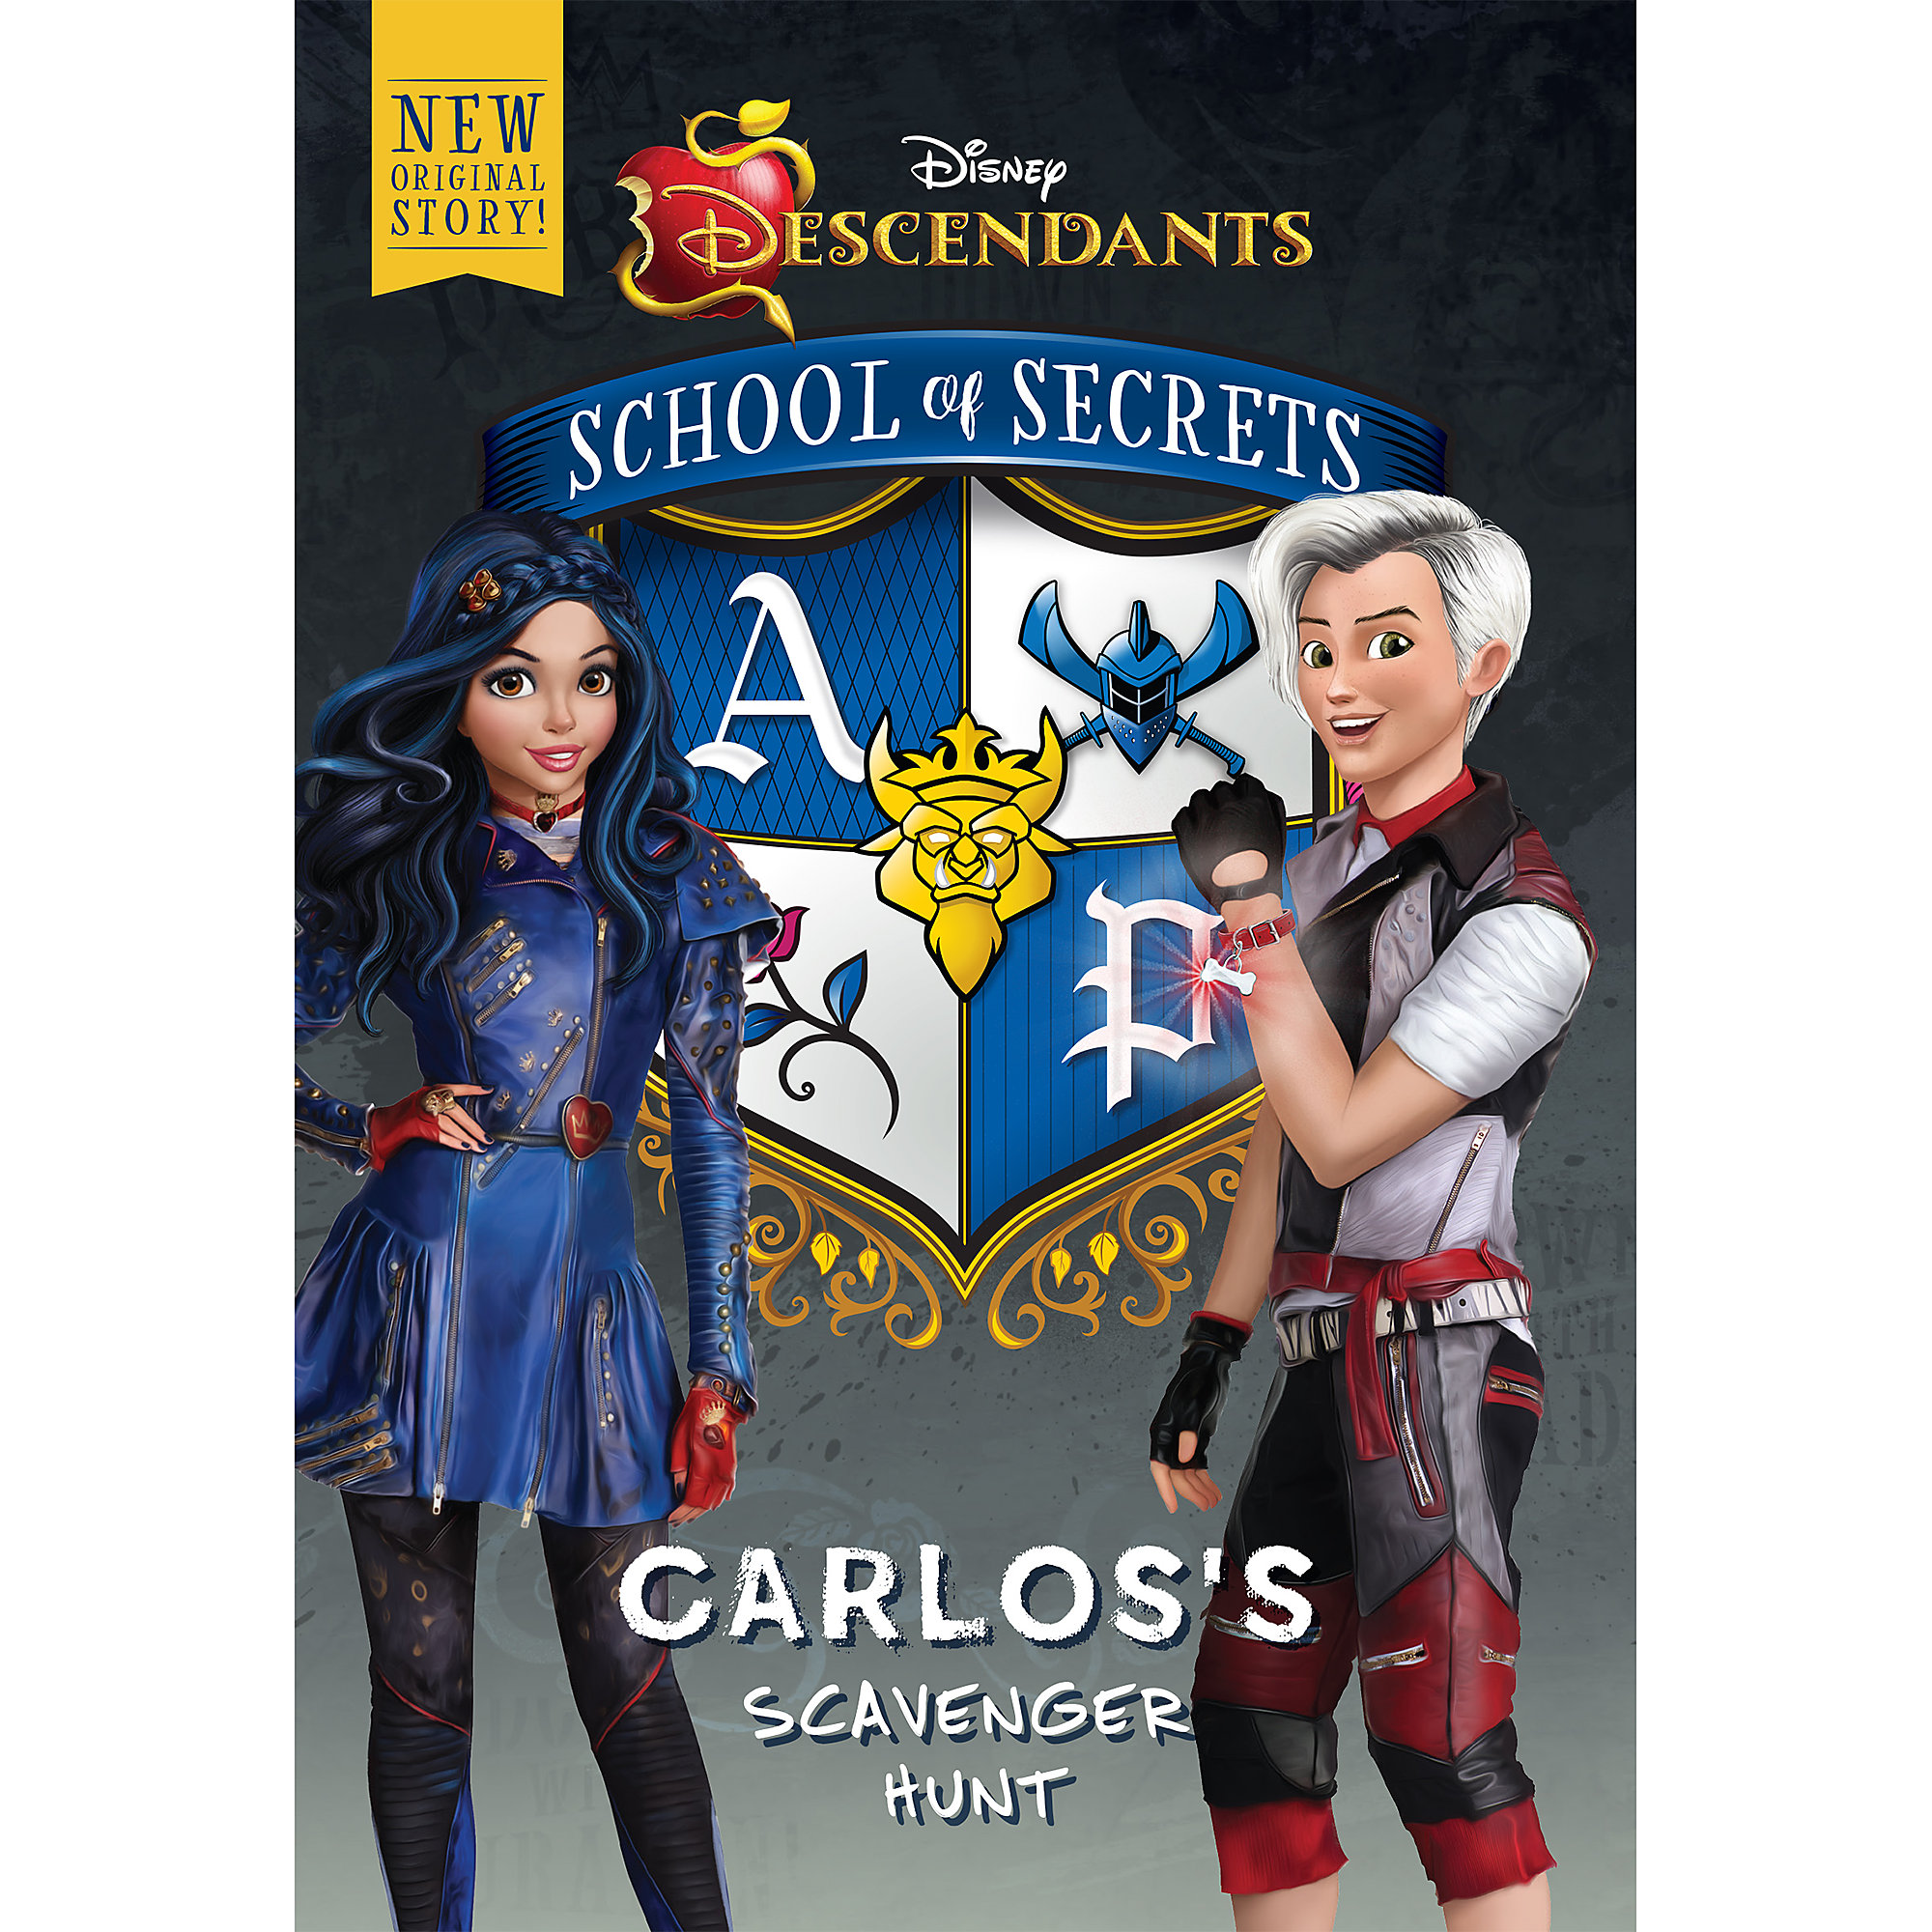 Descendants: School of Secrets: Carlos's Scavenger Hunt Book